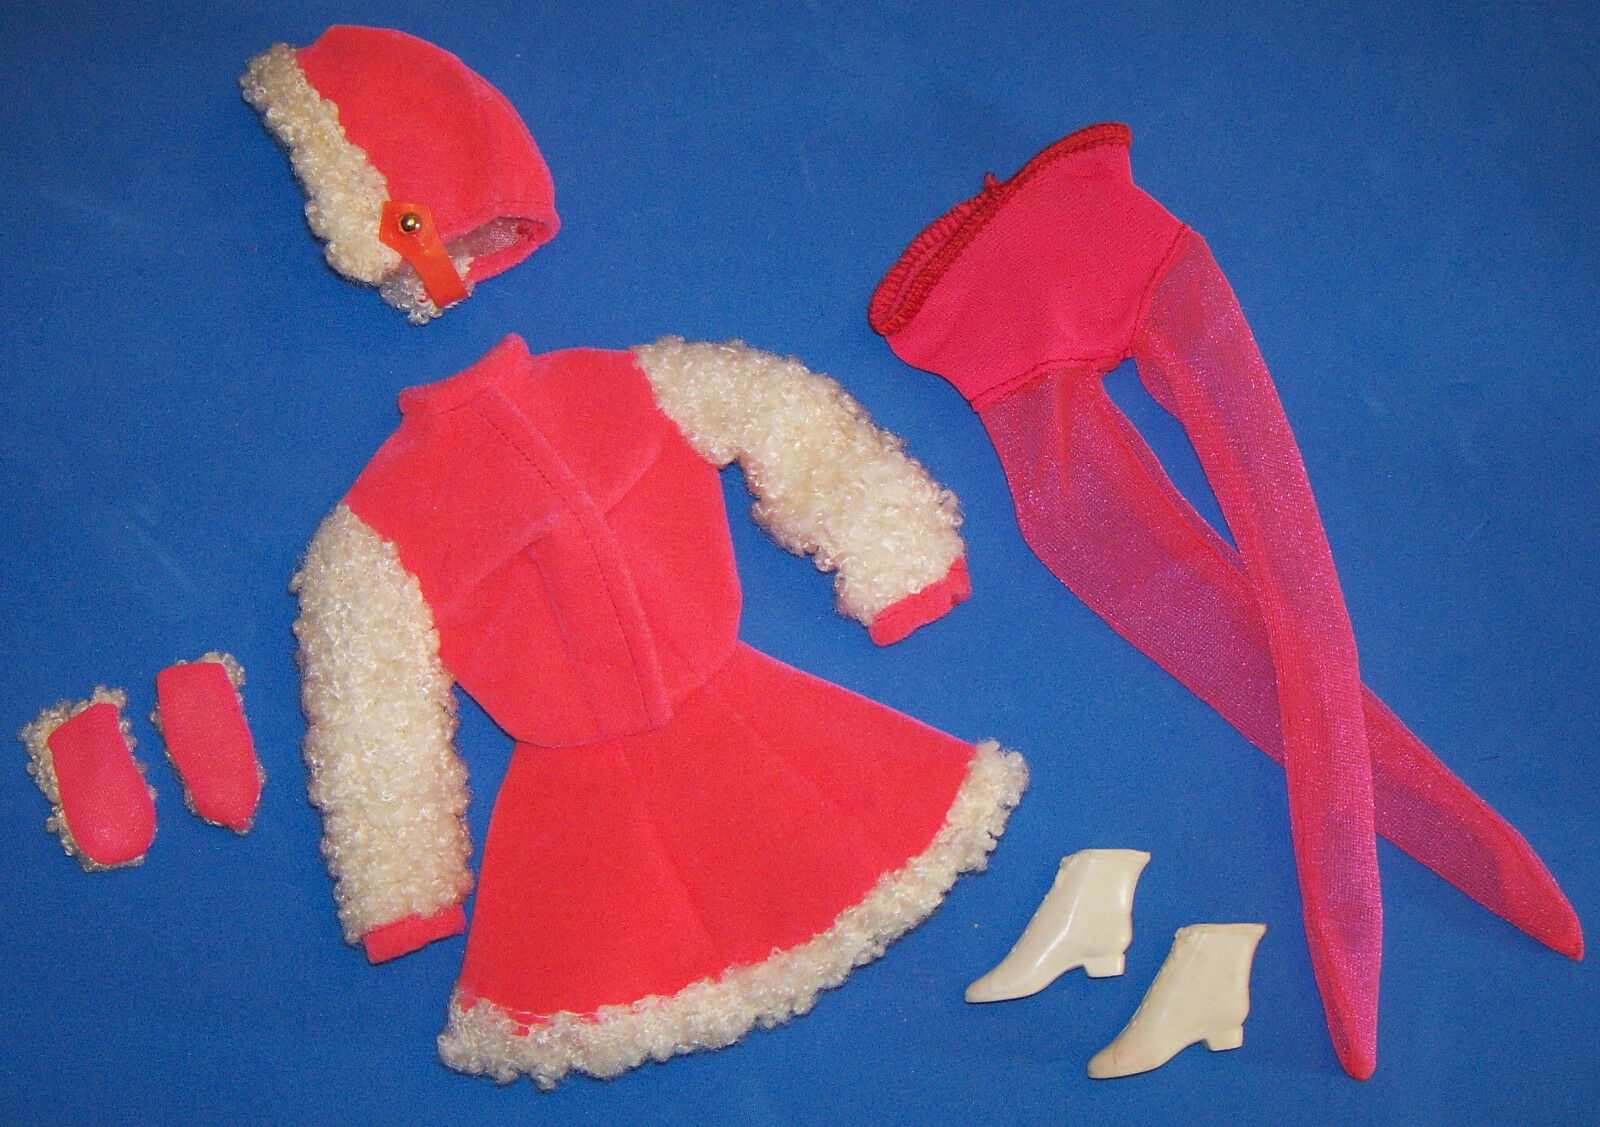 Vintage Barbie Ghiaccio Mates  1793 & Guanti Cappello Collant Pattini 1970-71